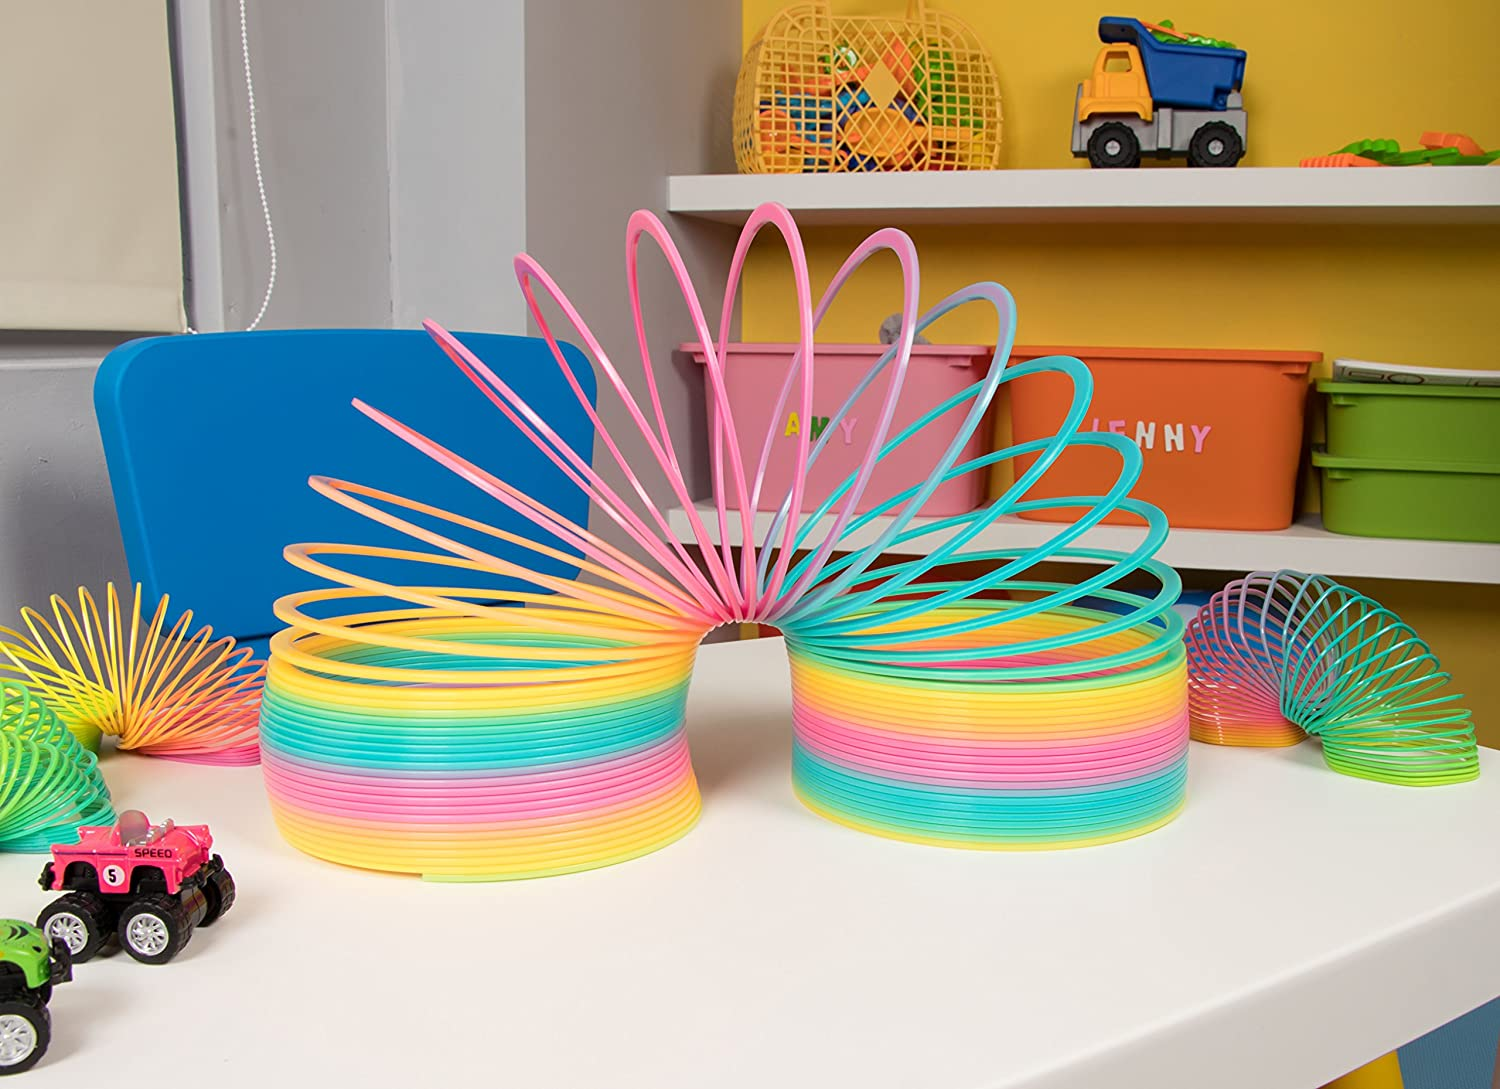 6.75 x 7 x 6.75 Inches Juvale Blue Panda Rainbow Spring Toy Novelty Toy Plastic Jumbo Coil Spring Kids Birthday Gift Favor